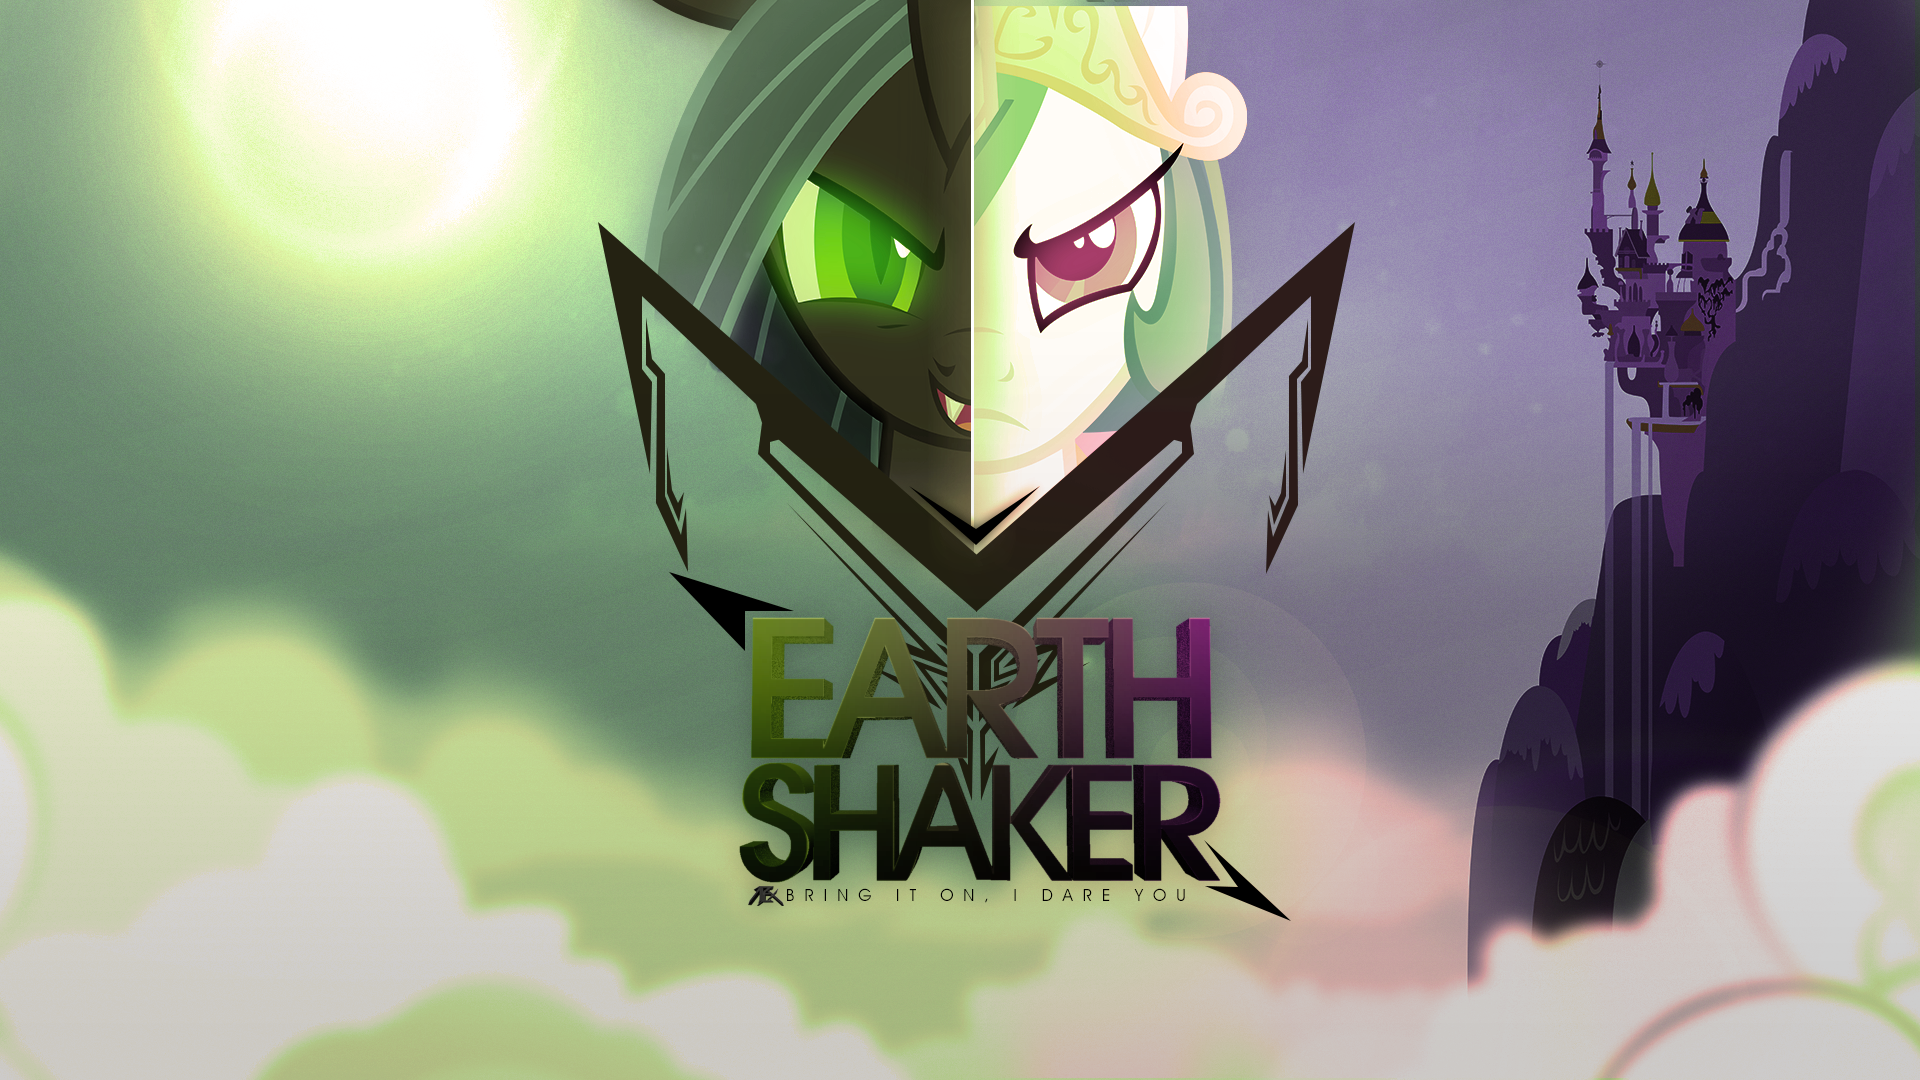 ApX: Earth Shaker by MikoyaNx